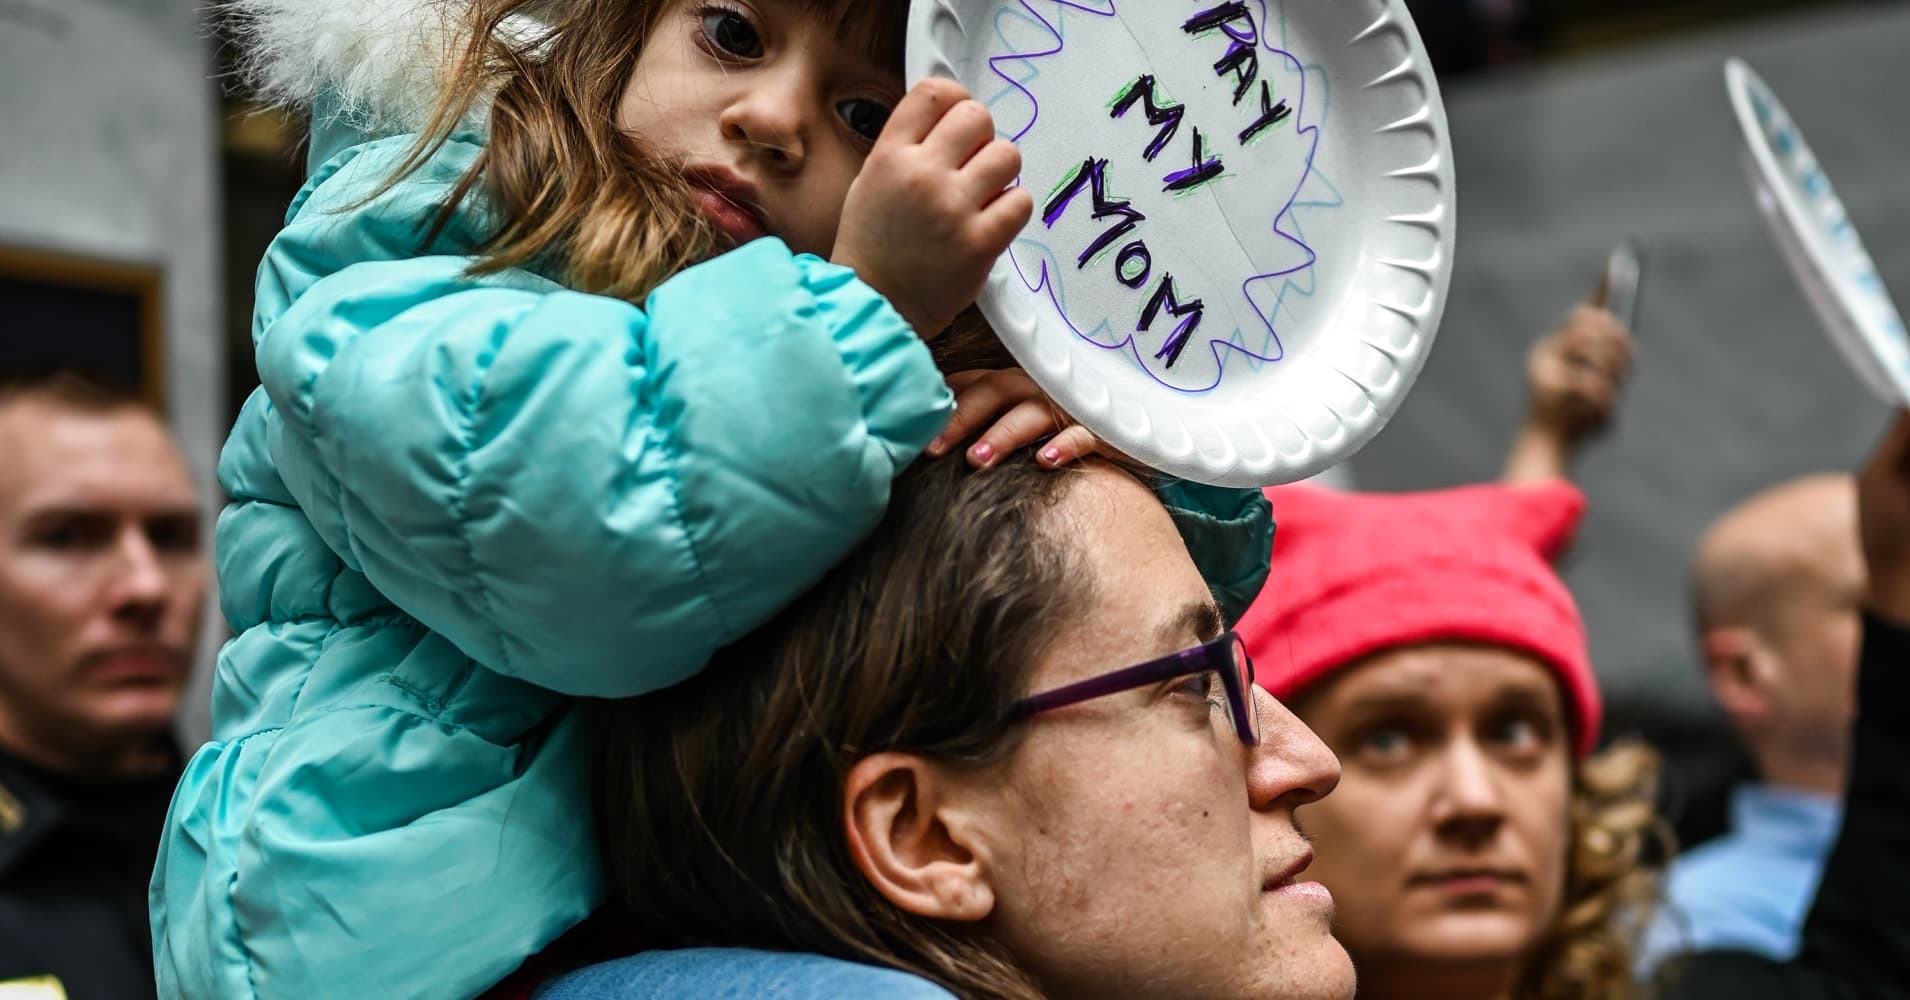 Two-year old Rosa Rivera is carried by her  mother, Tania Alfonso, 38, a federal worker, as Union members, including National Federation of Federal Employees and SEIU, and furloughed federal workers rally in Washington, D.C. on Wednesday, January 23, 2019.